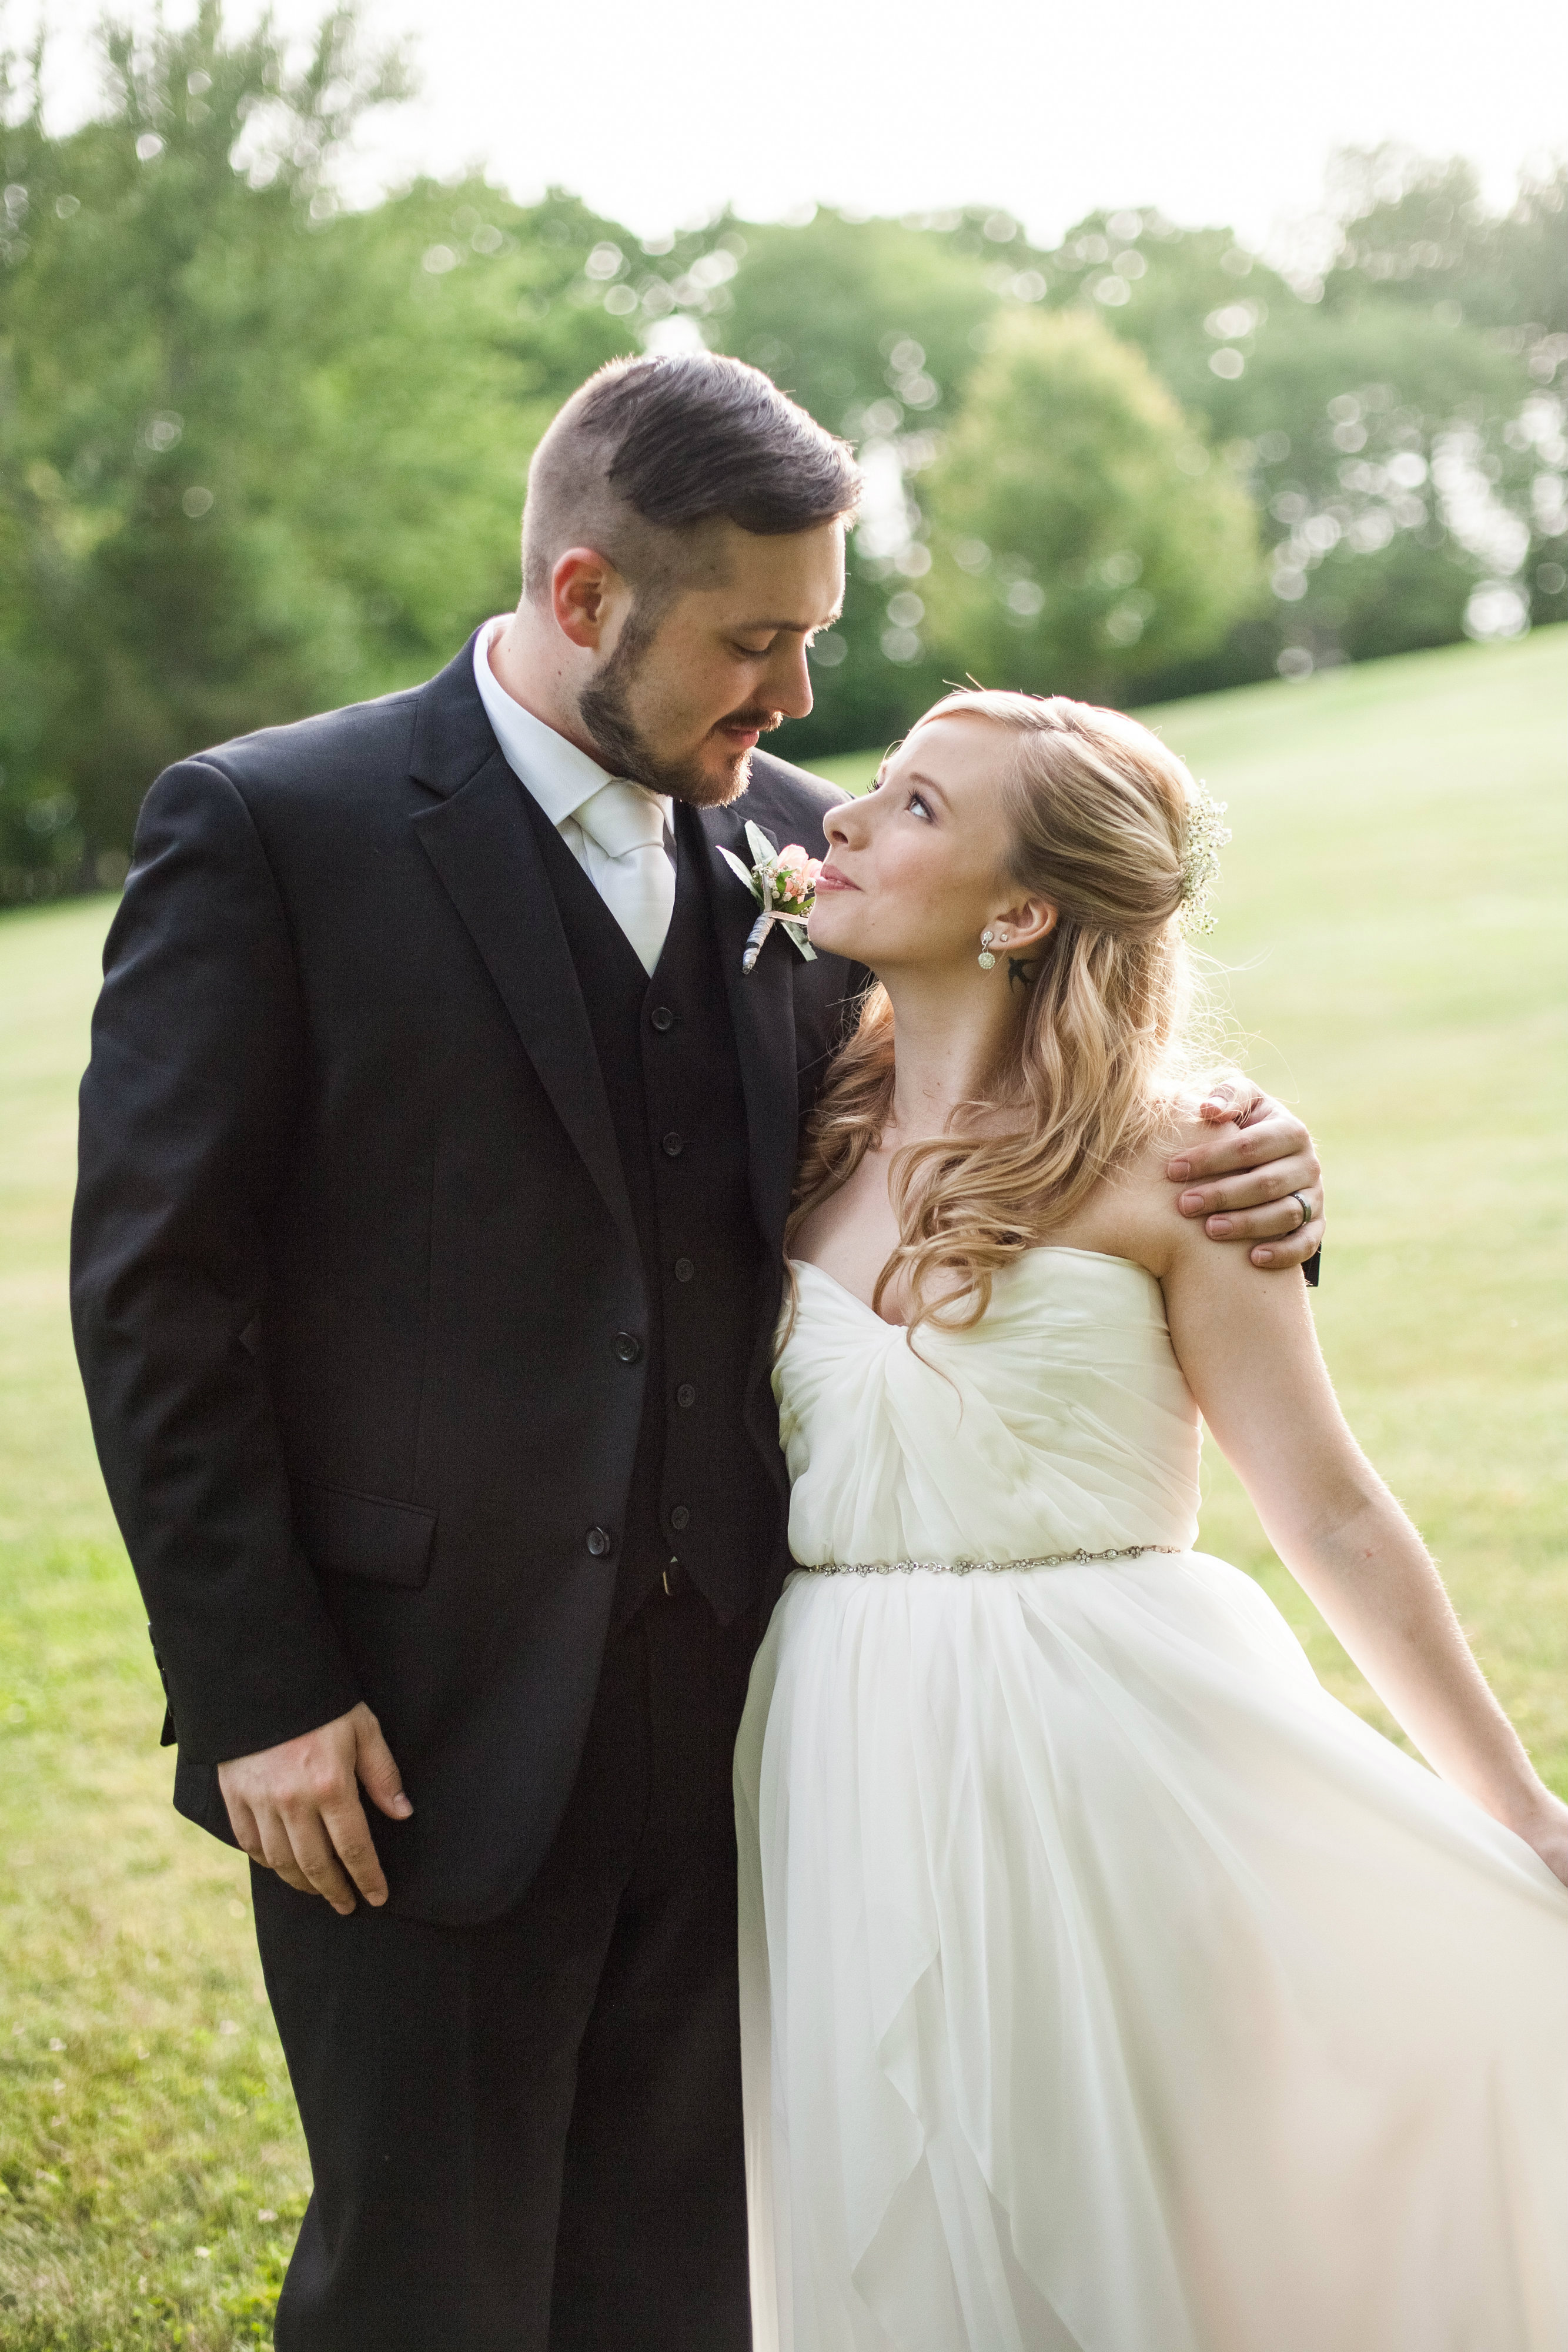 Our 2nd Anniversary - Photos From Our Big Day | Coffee With Summer